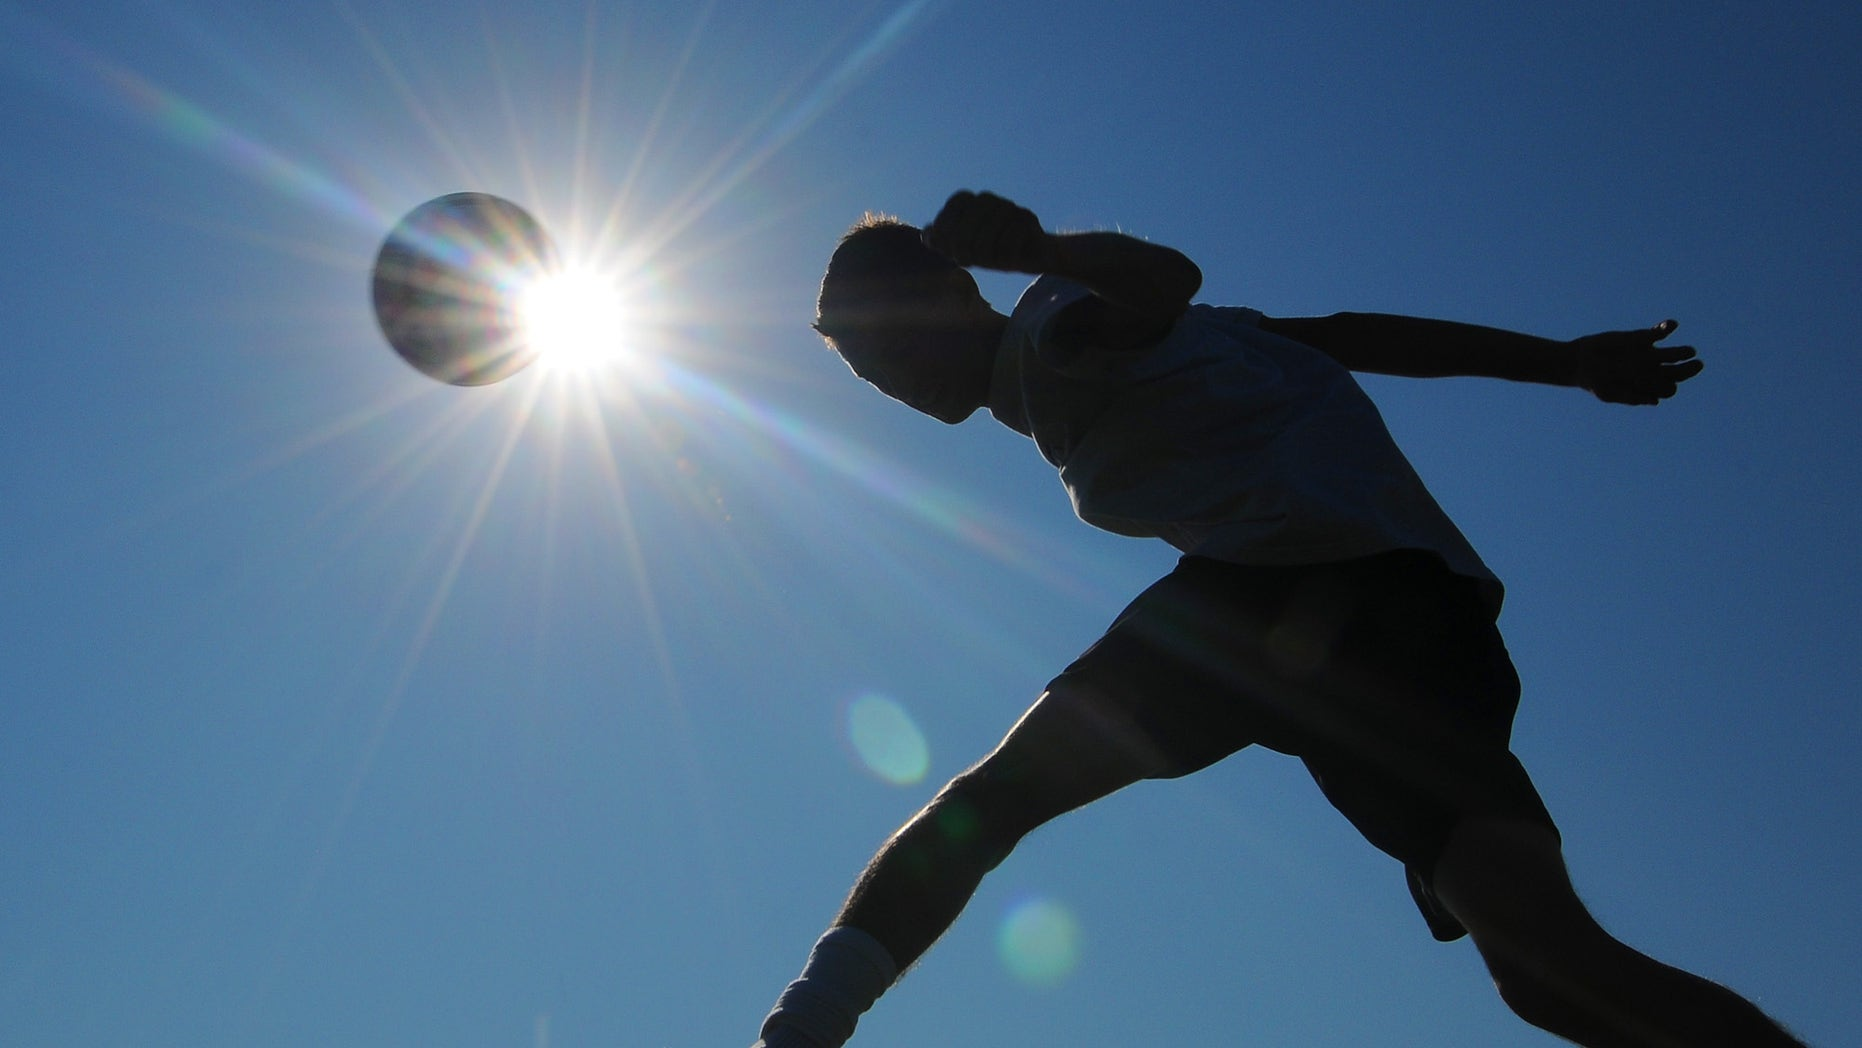 Playing sports in hot, steamy weather is safe for healthy children and teen athletes, so long as precautions are taken and the drive to win doesn't trump common sense, the nation's largest pediatricians group said Monday, Aug. 8, 2011.